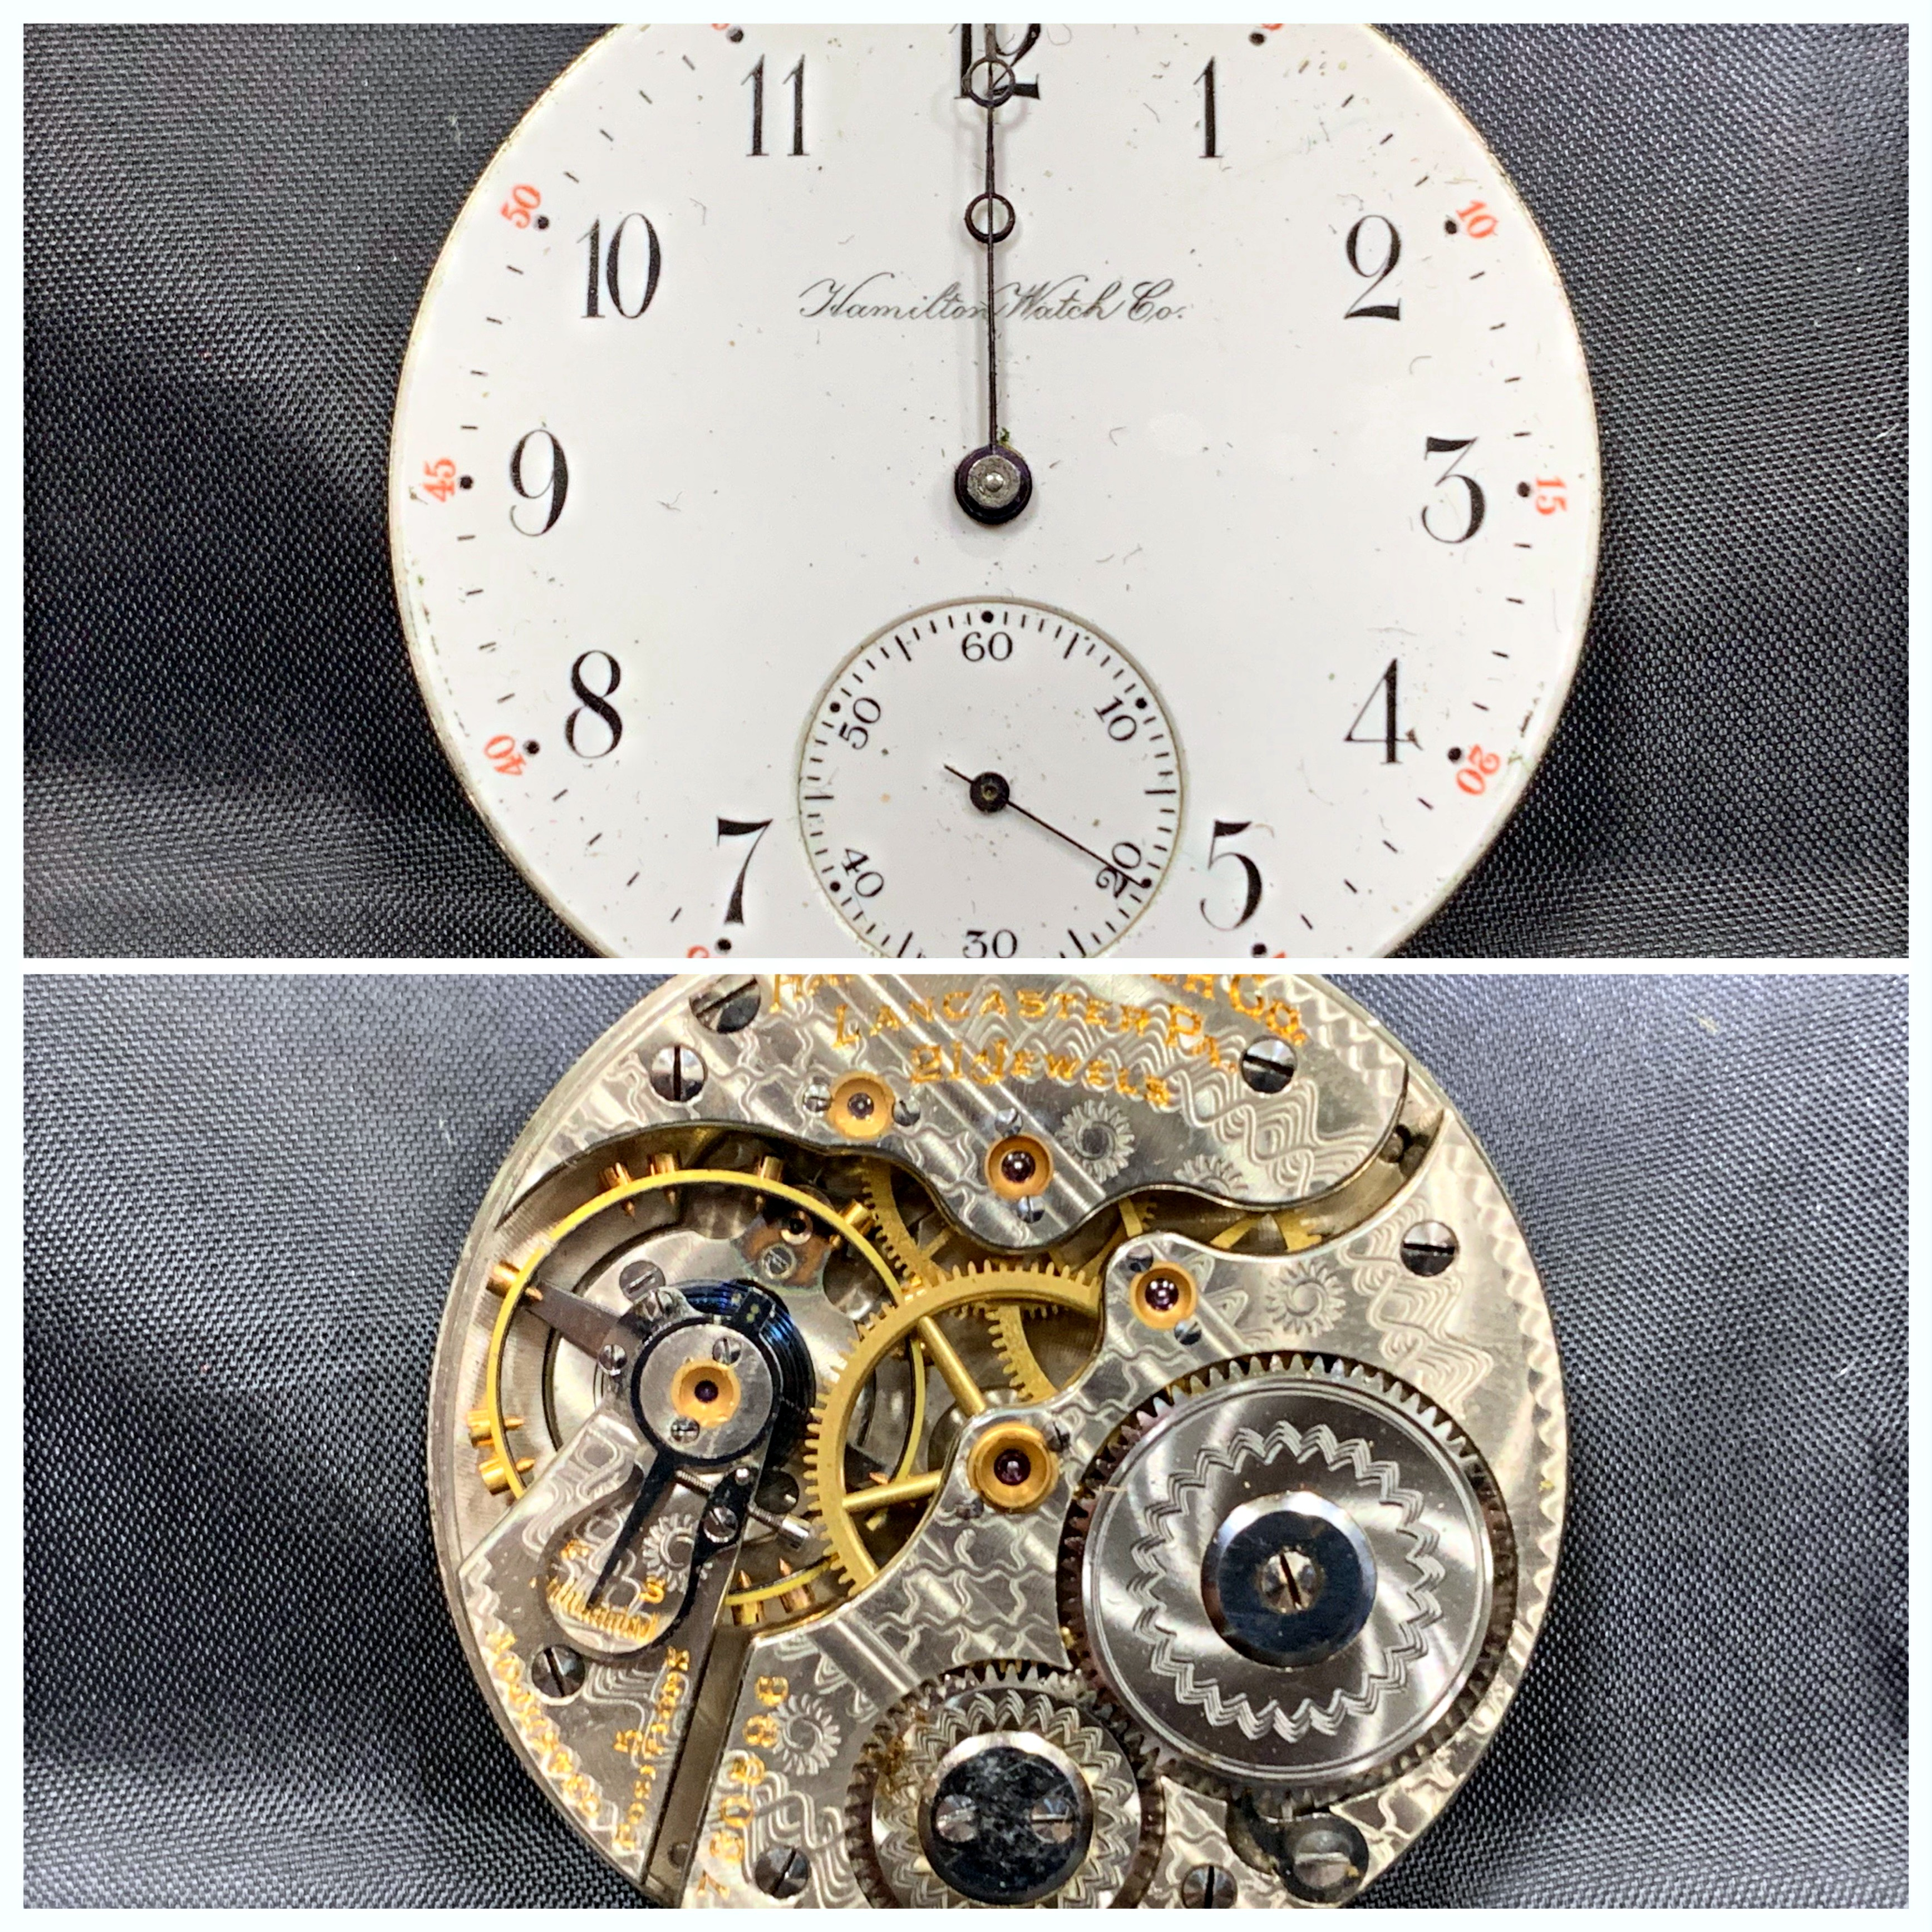 Repaired pocket watch from 1880's